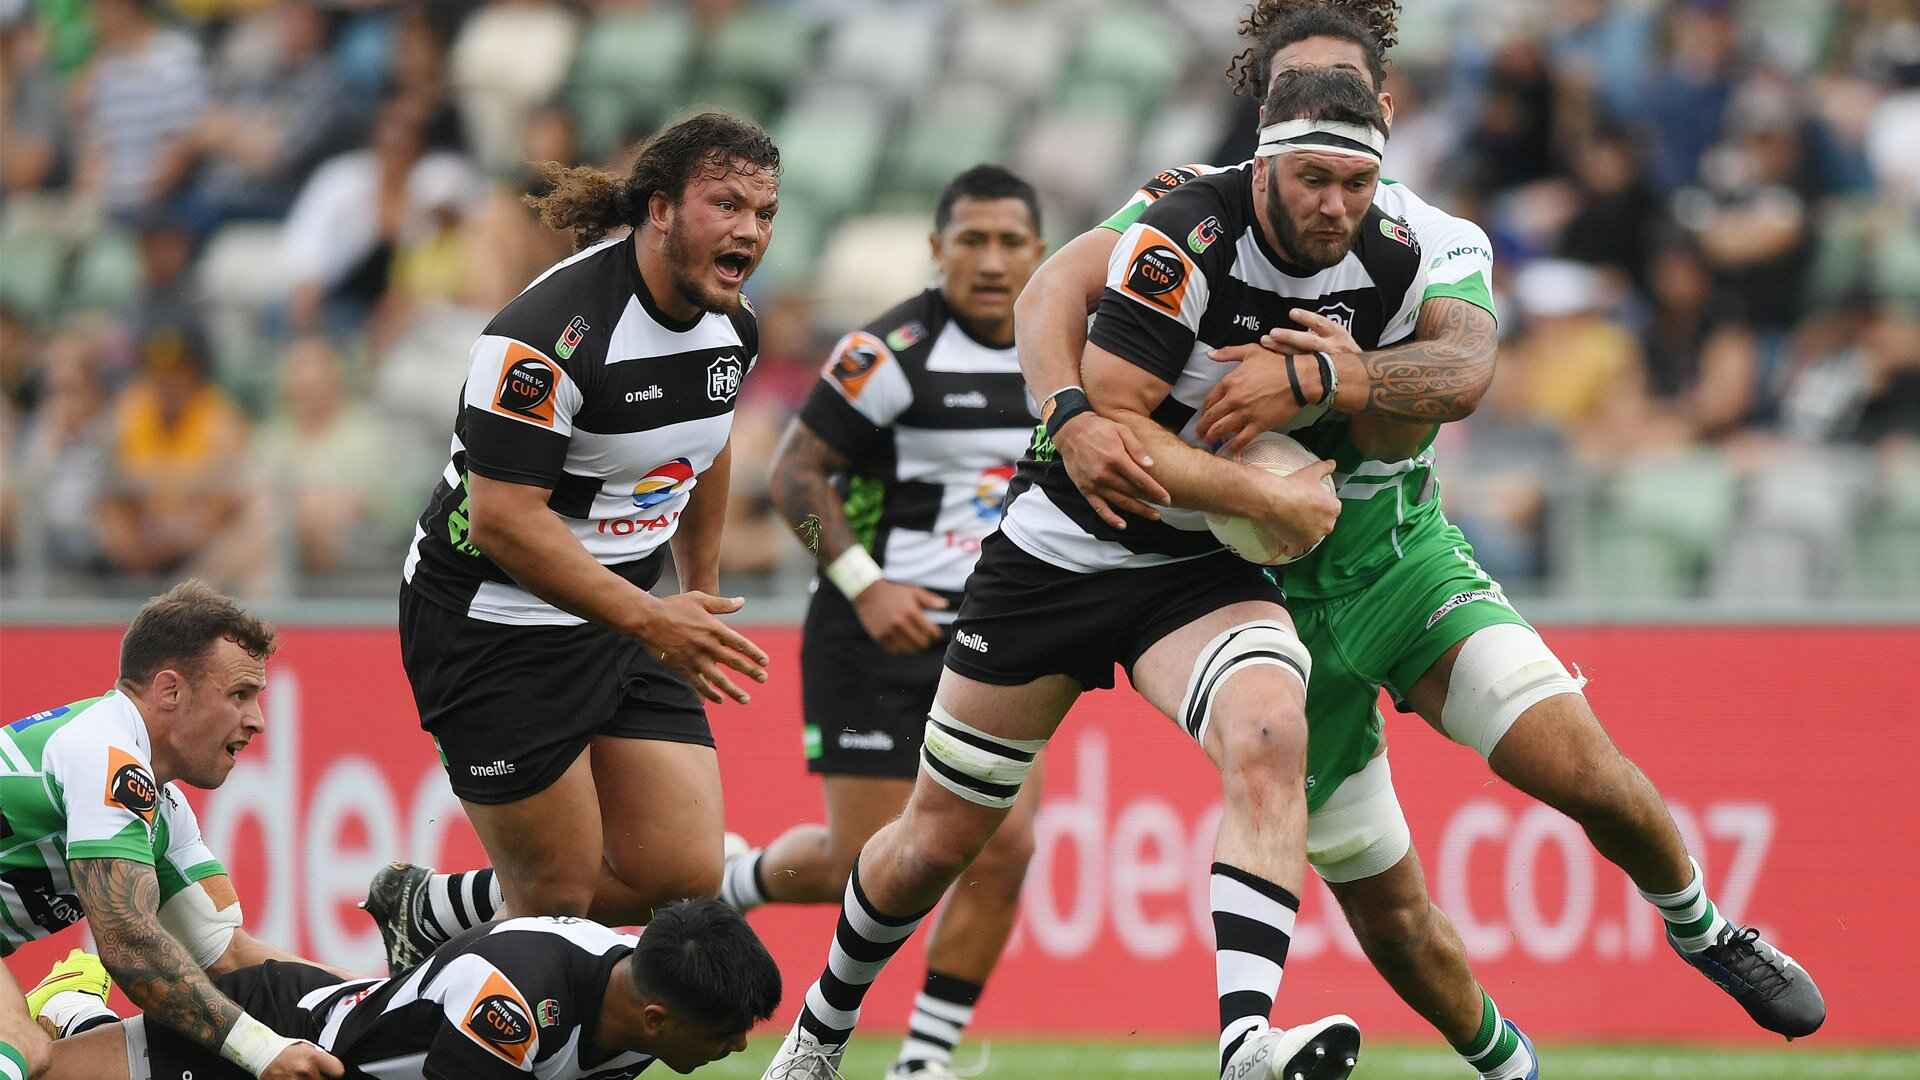 Just one team stands between Hawke's Bay and a summer with the Ranfurly Shield